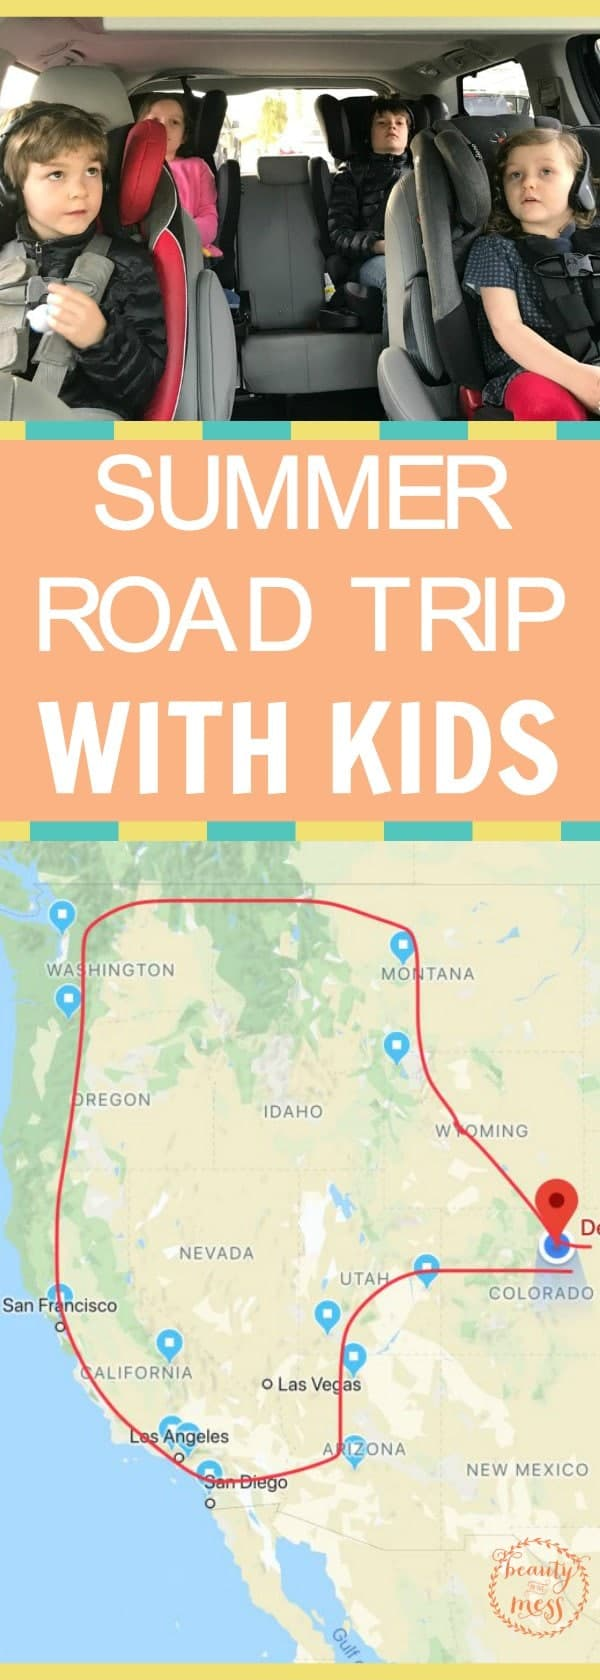 This Summer we are doing something a little crazy. We are taking a month-long West Coast Summer road trip. With four kids. Click to see where we are going. #familytravel #beautyinthemess #summer #roadtrip #westcoast #westcoasttravel